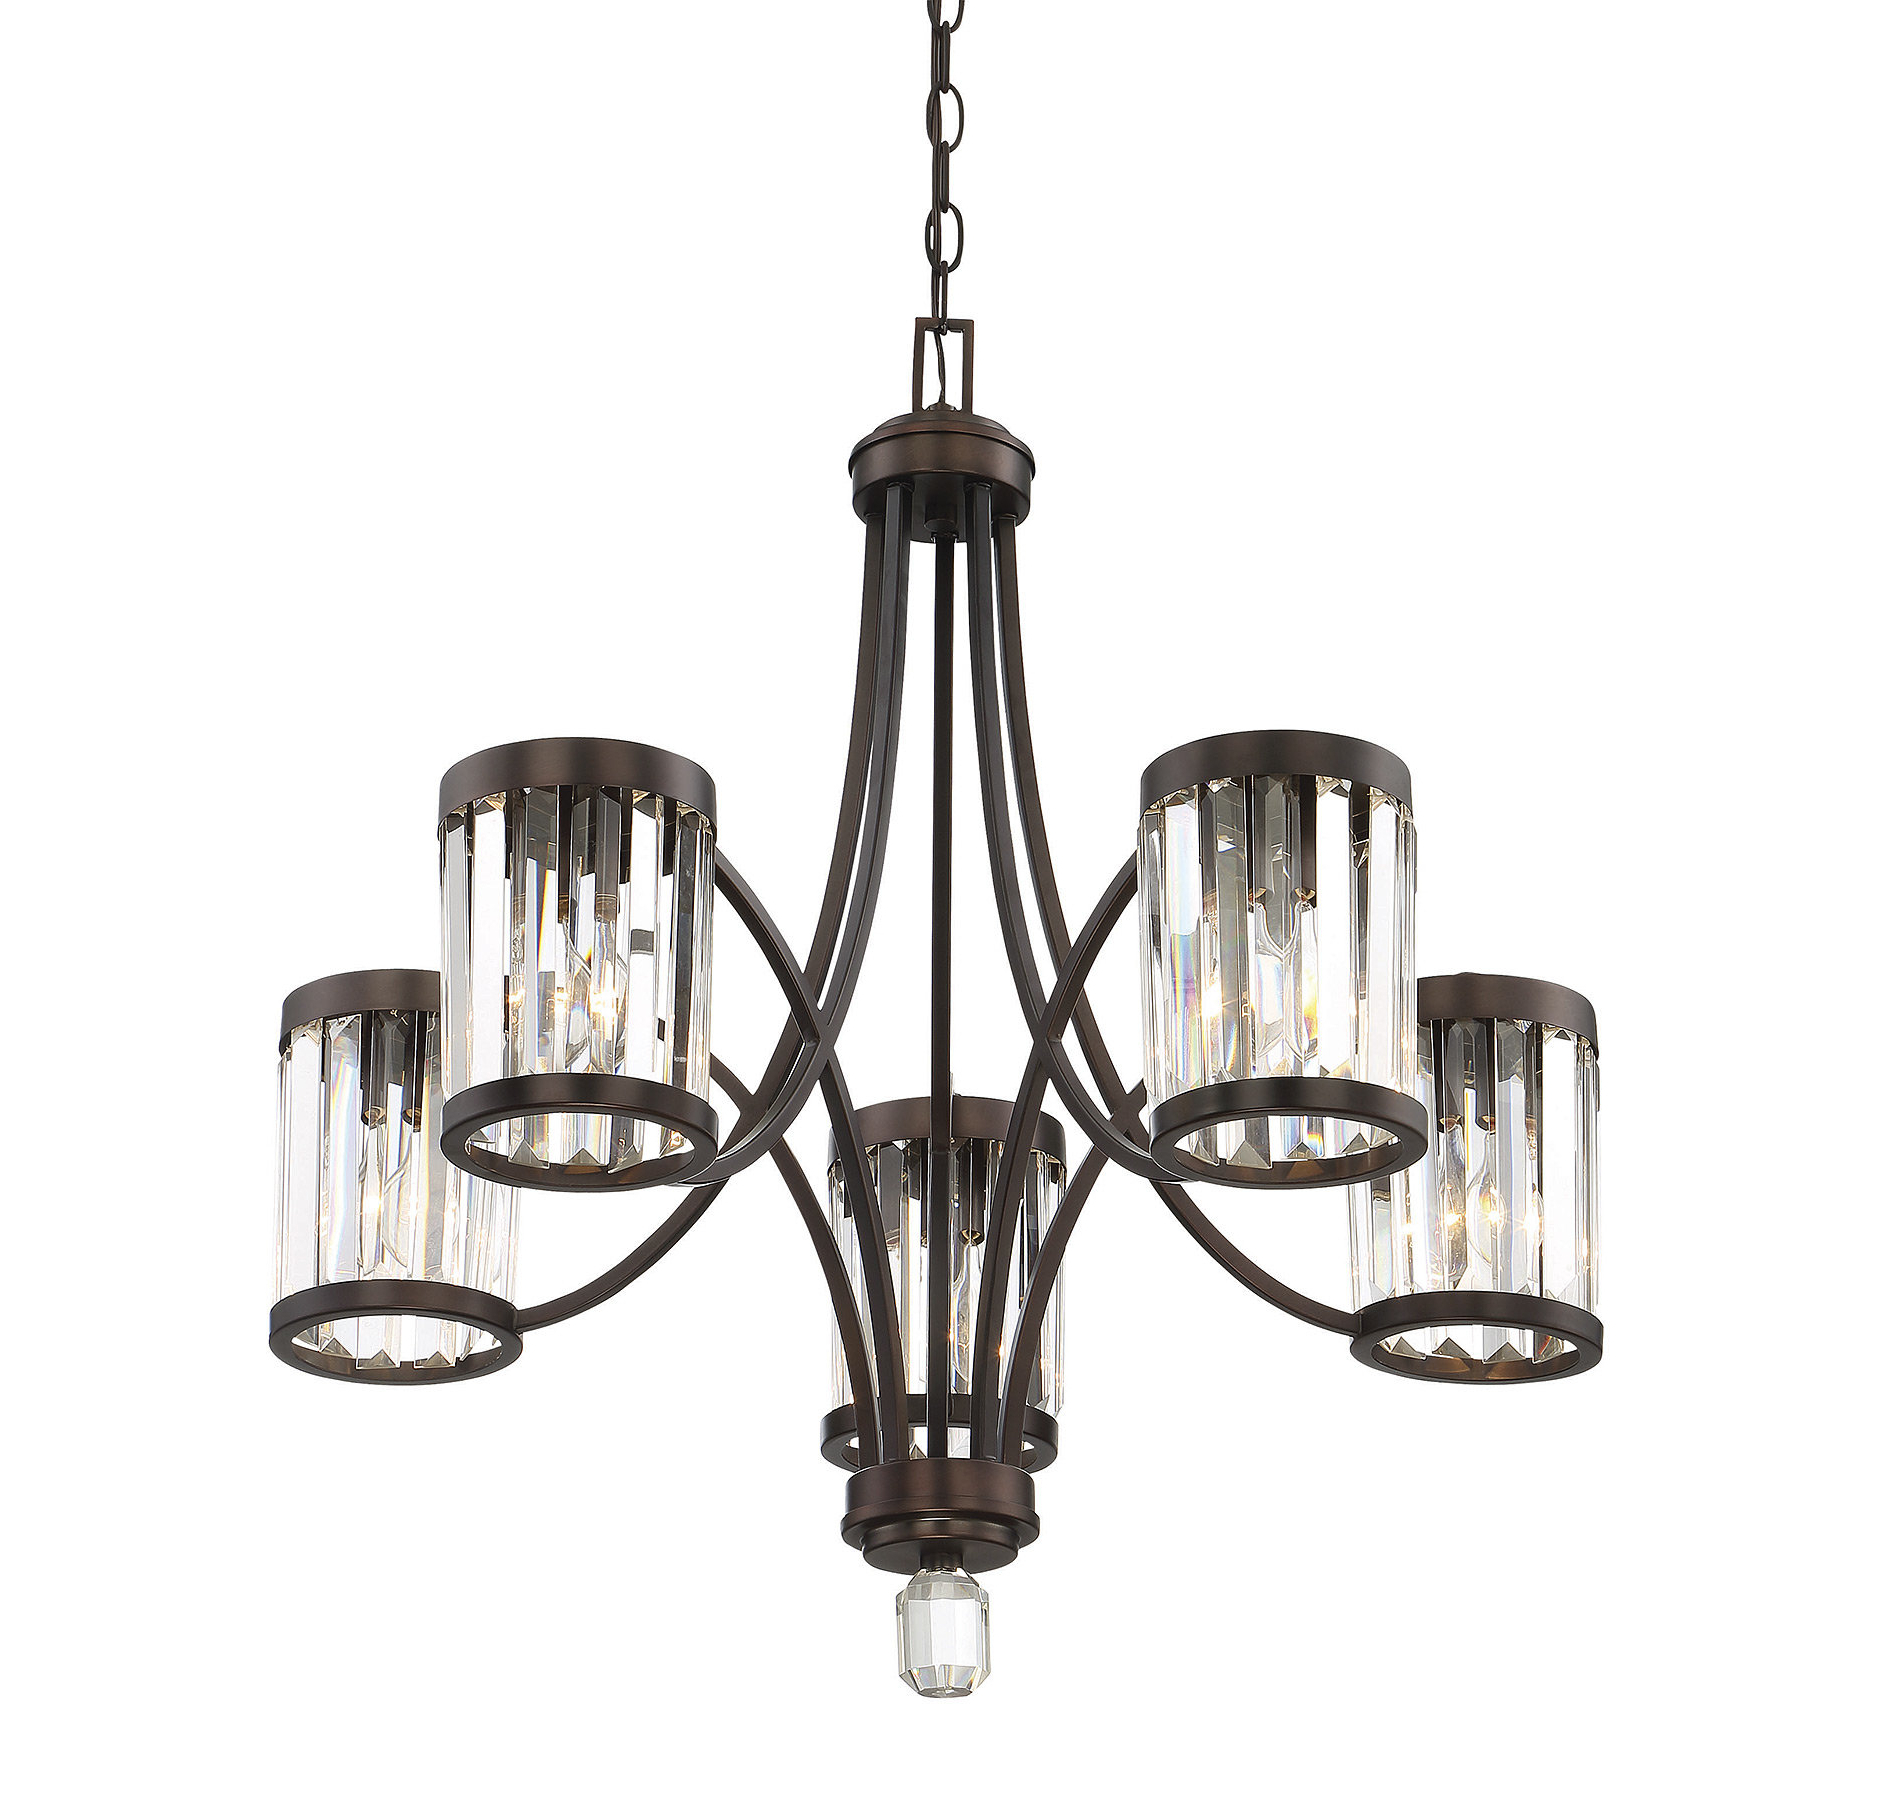 Kenna 5 Light Empire Chandeliers With Regard To Recent Caesar 5 Light Shaded Chandelier (View 16 of 25)